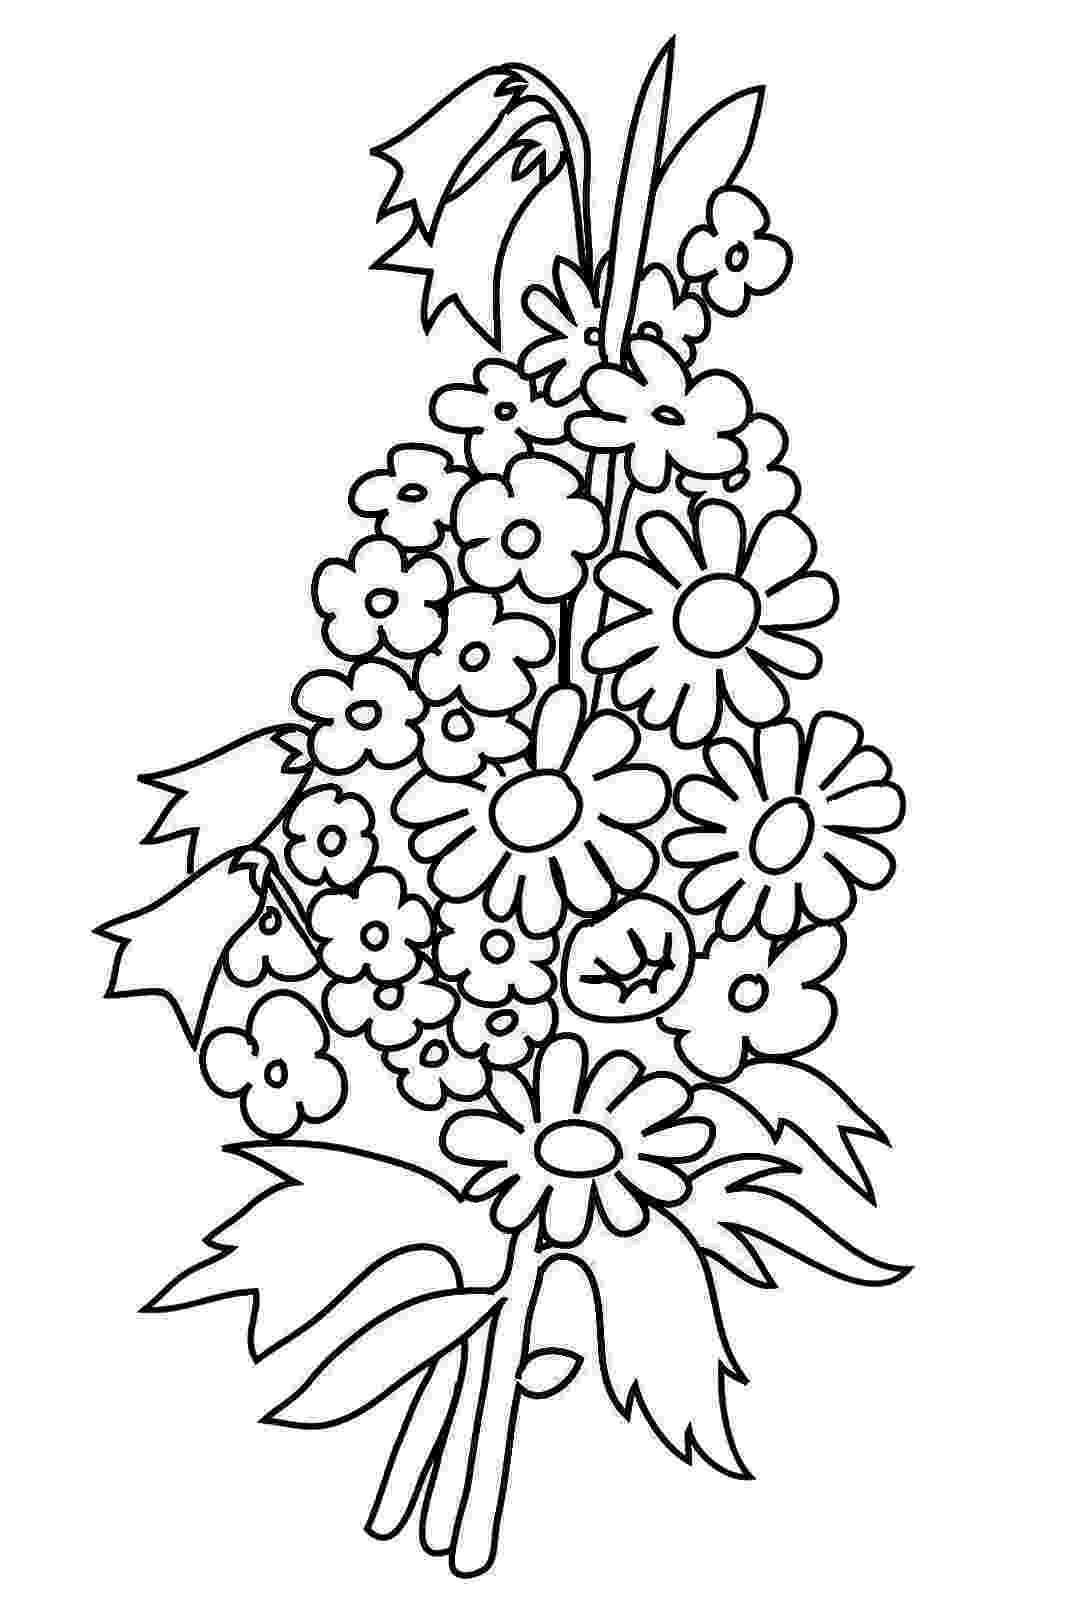 flowers colouring free printable flower coloring pages for kids best colouring flowers 1 5